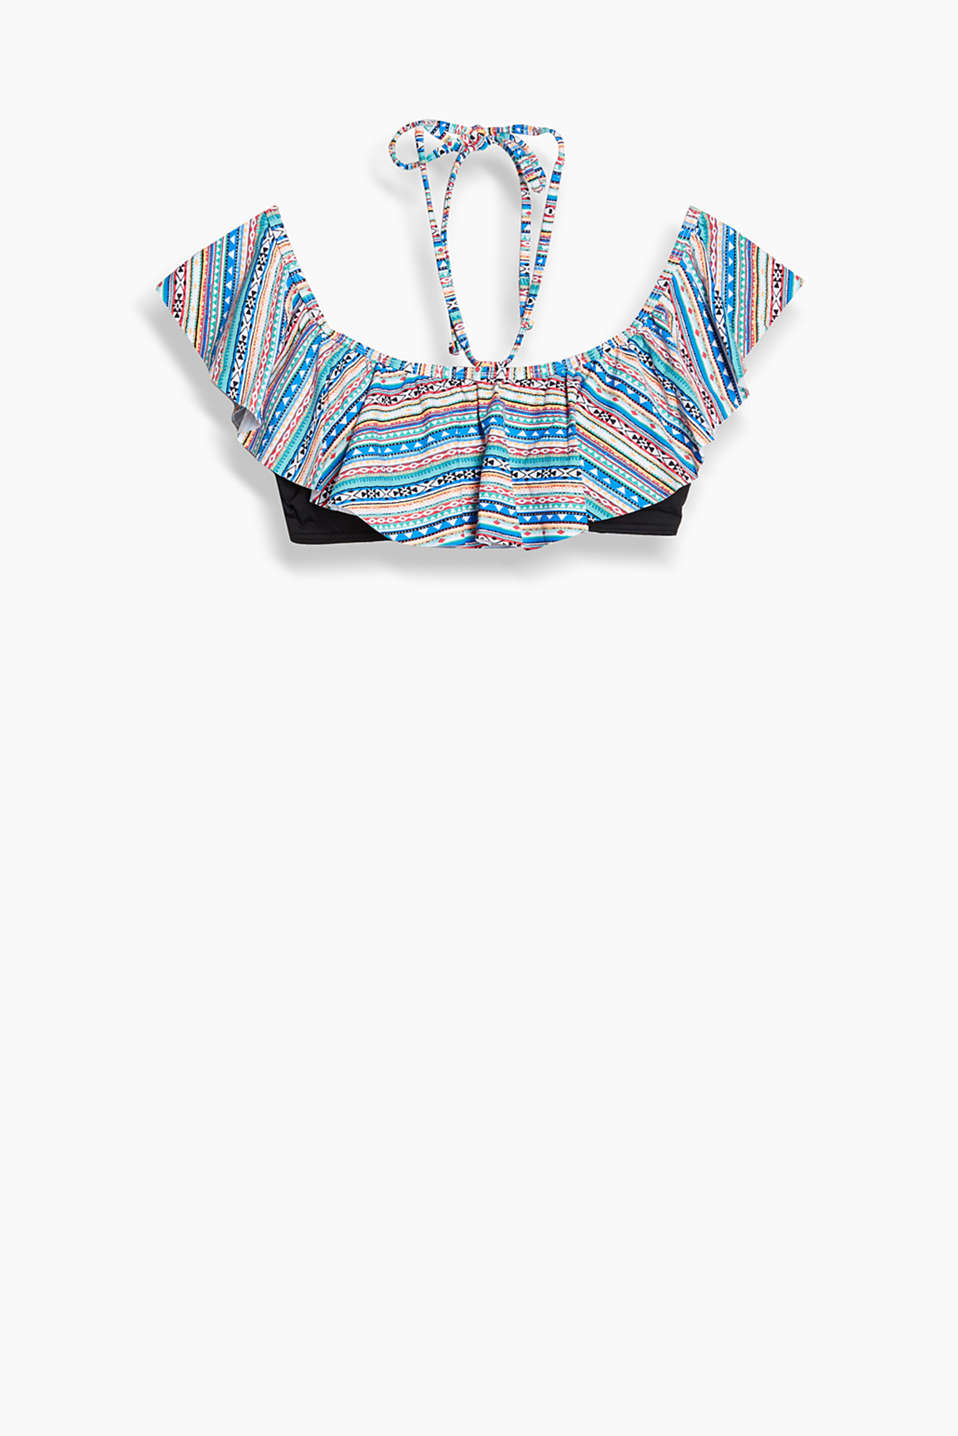 Collection: NAYLOR BEACH - padded bandeau top with a patterned, ethnic-style frill